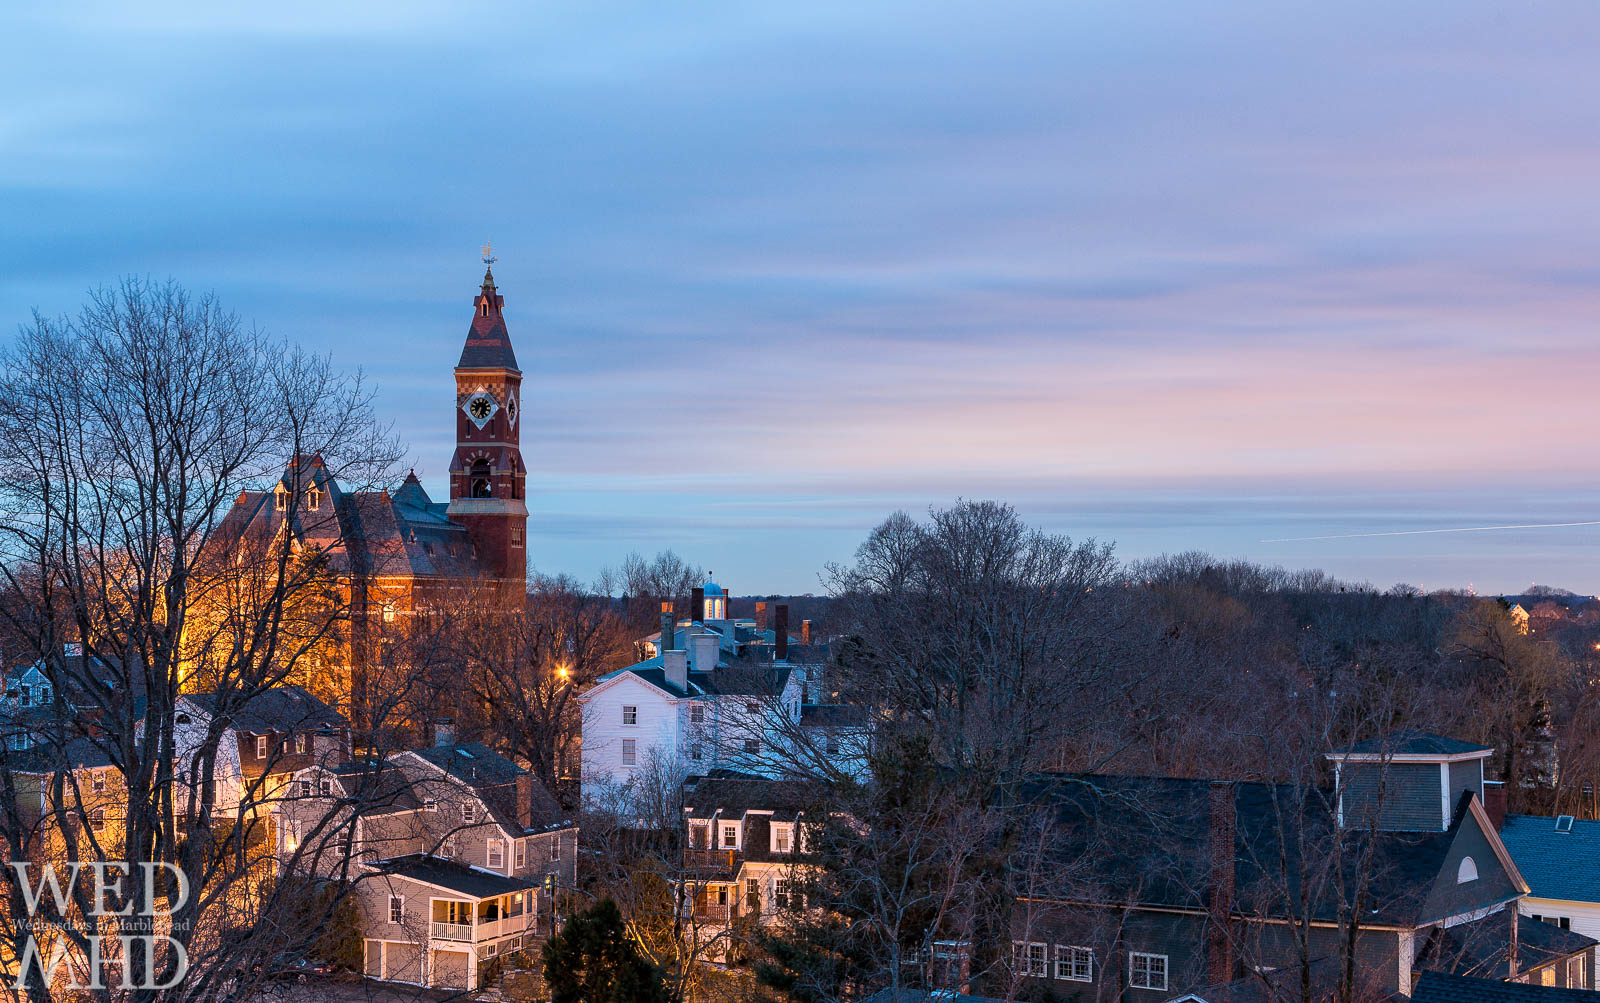 The glowing light of dawn illuminates Abbot Hall in this view from atop St. Michaels steeple